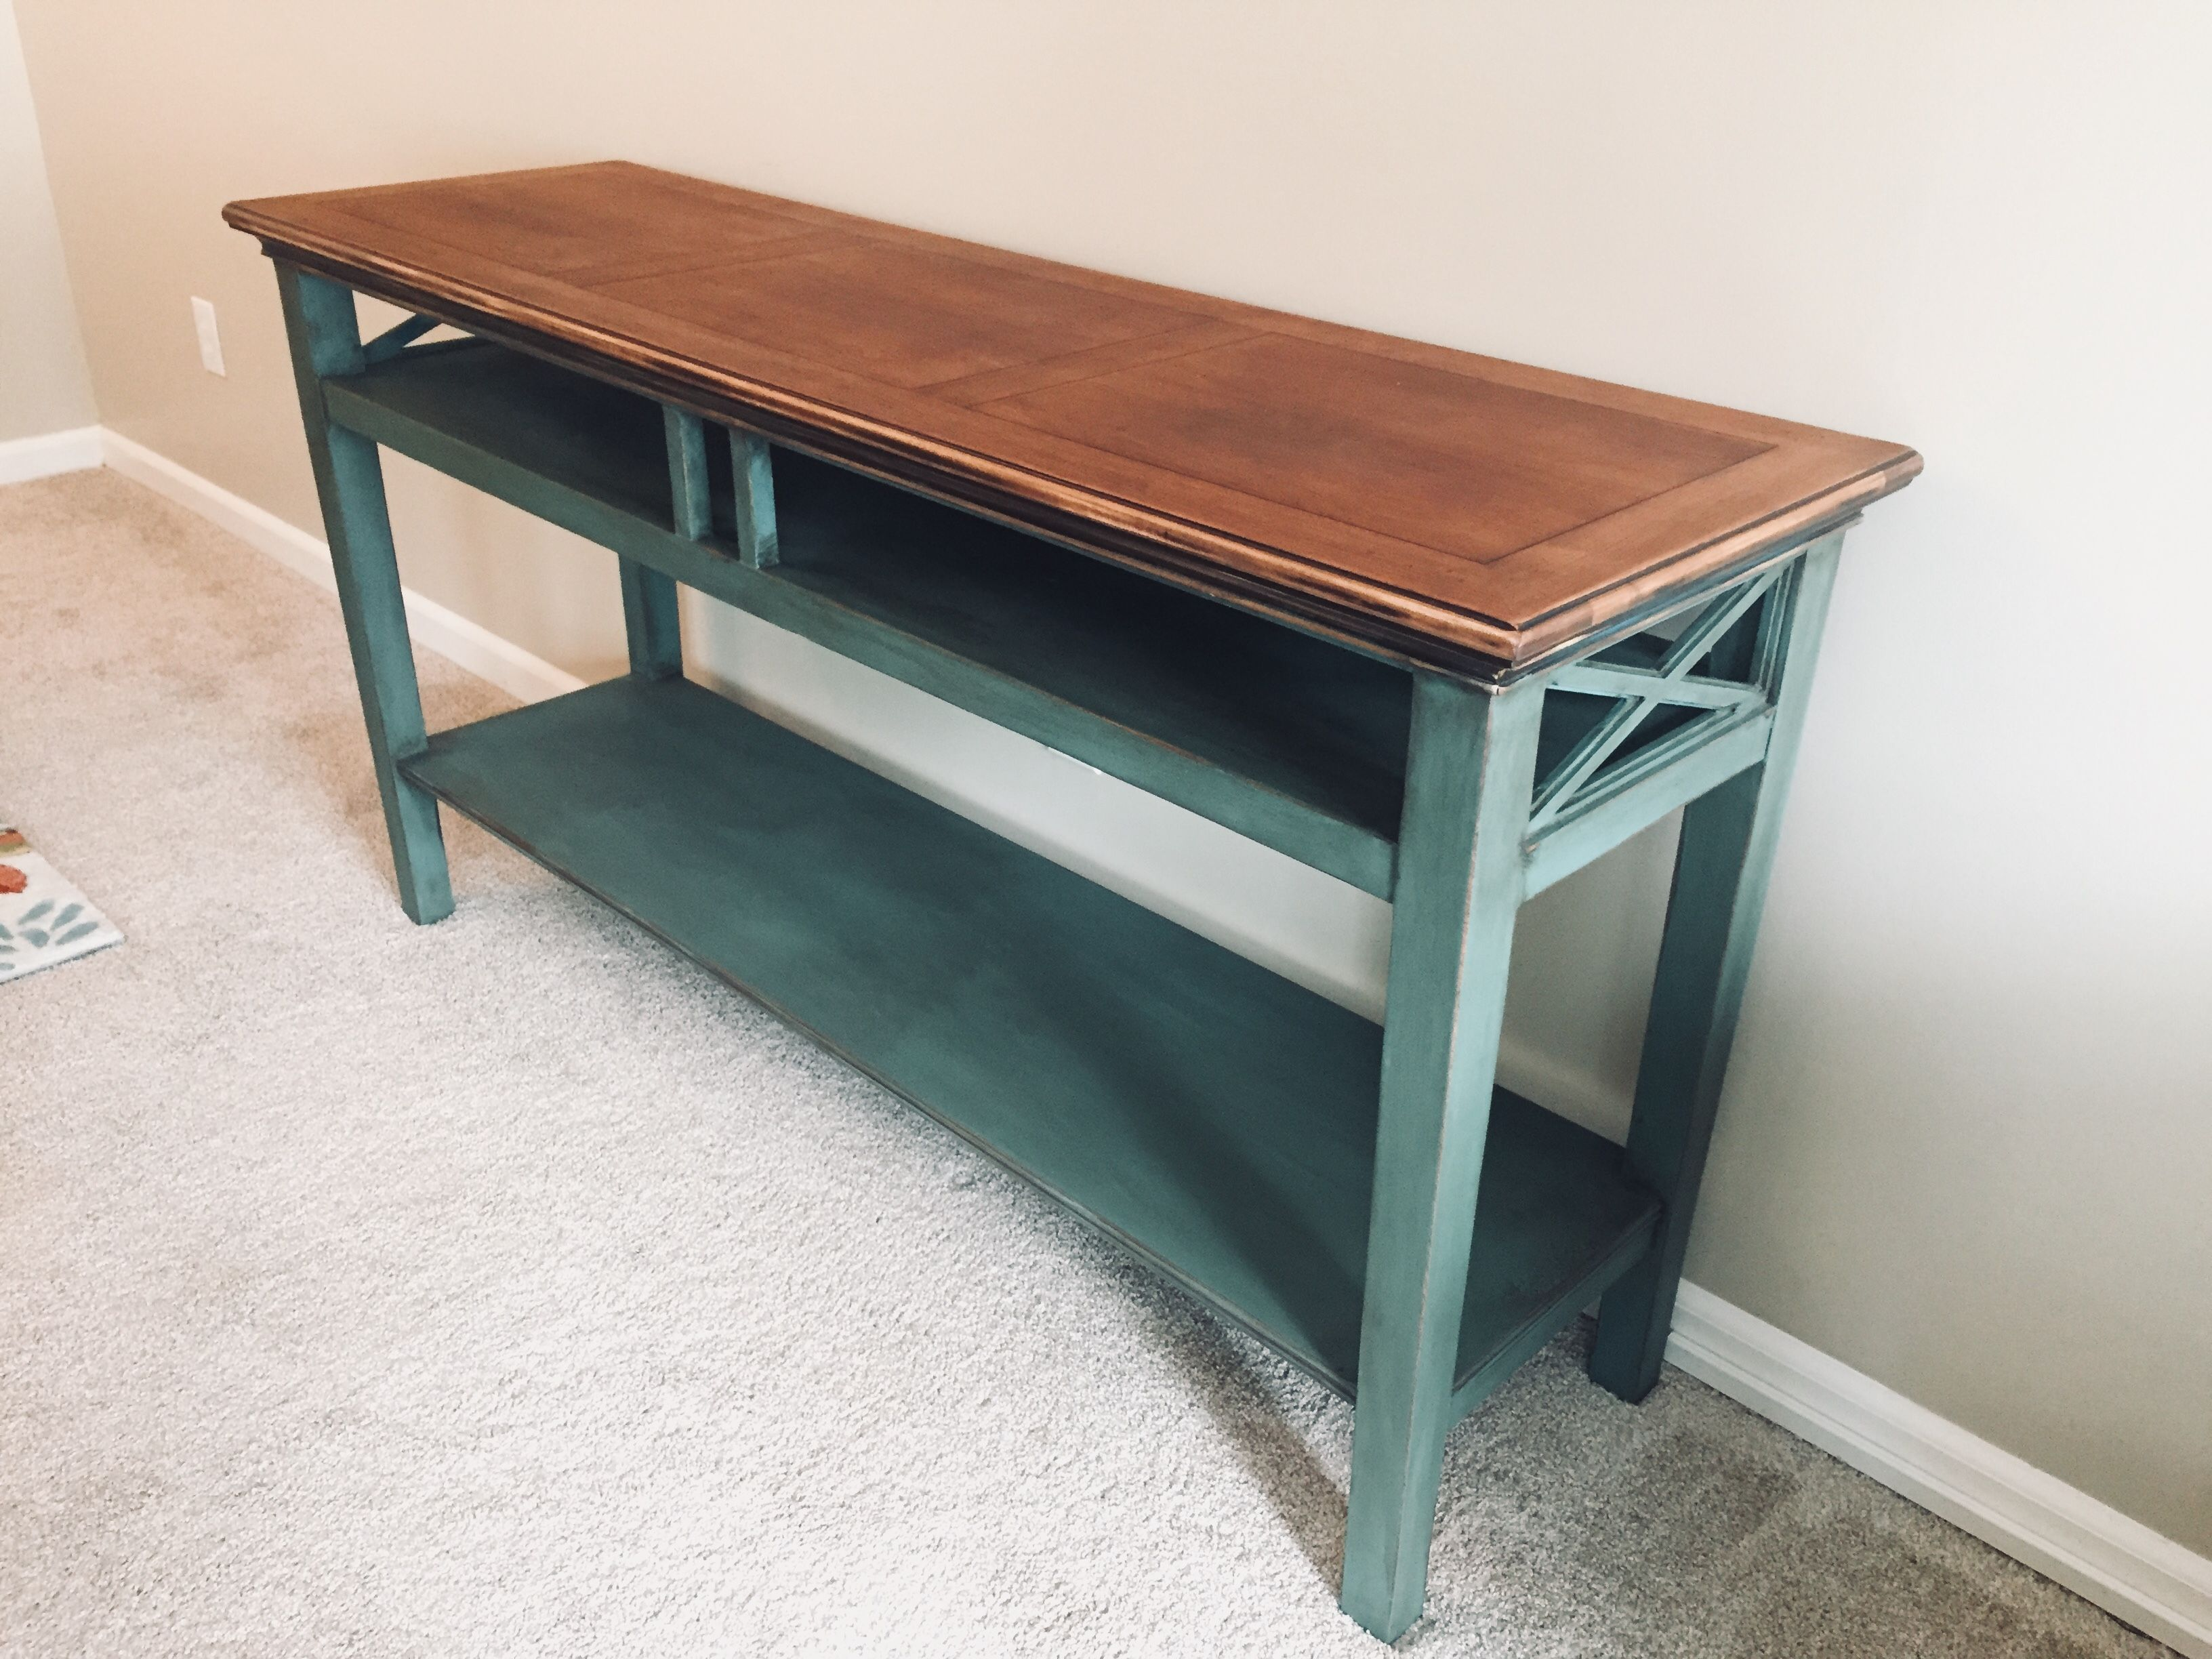 Farmhouse Style Sofa Table Refinish Project / DIY / With Chalk Paint And  Antiquing Wax.